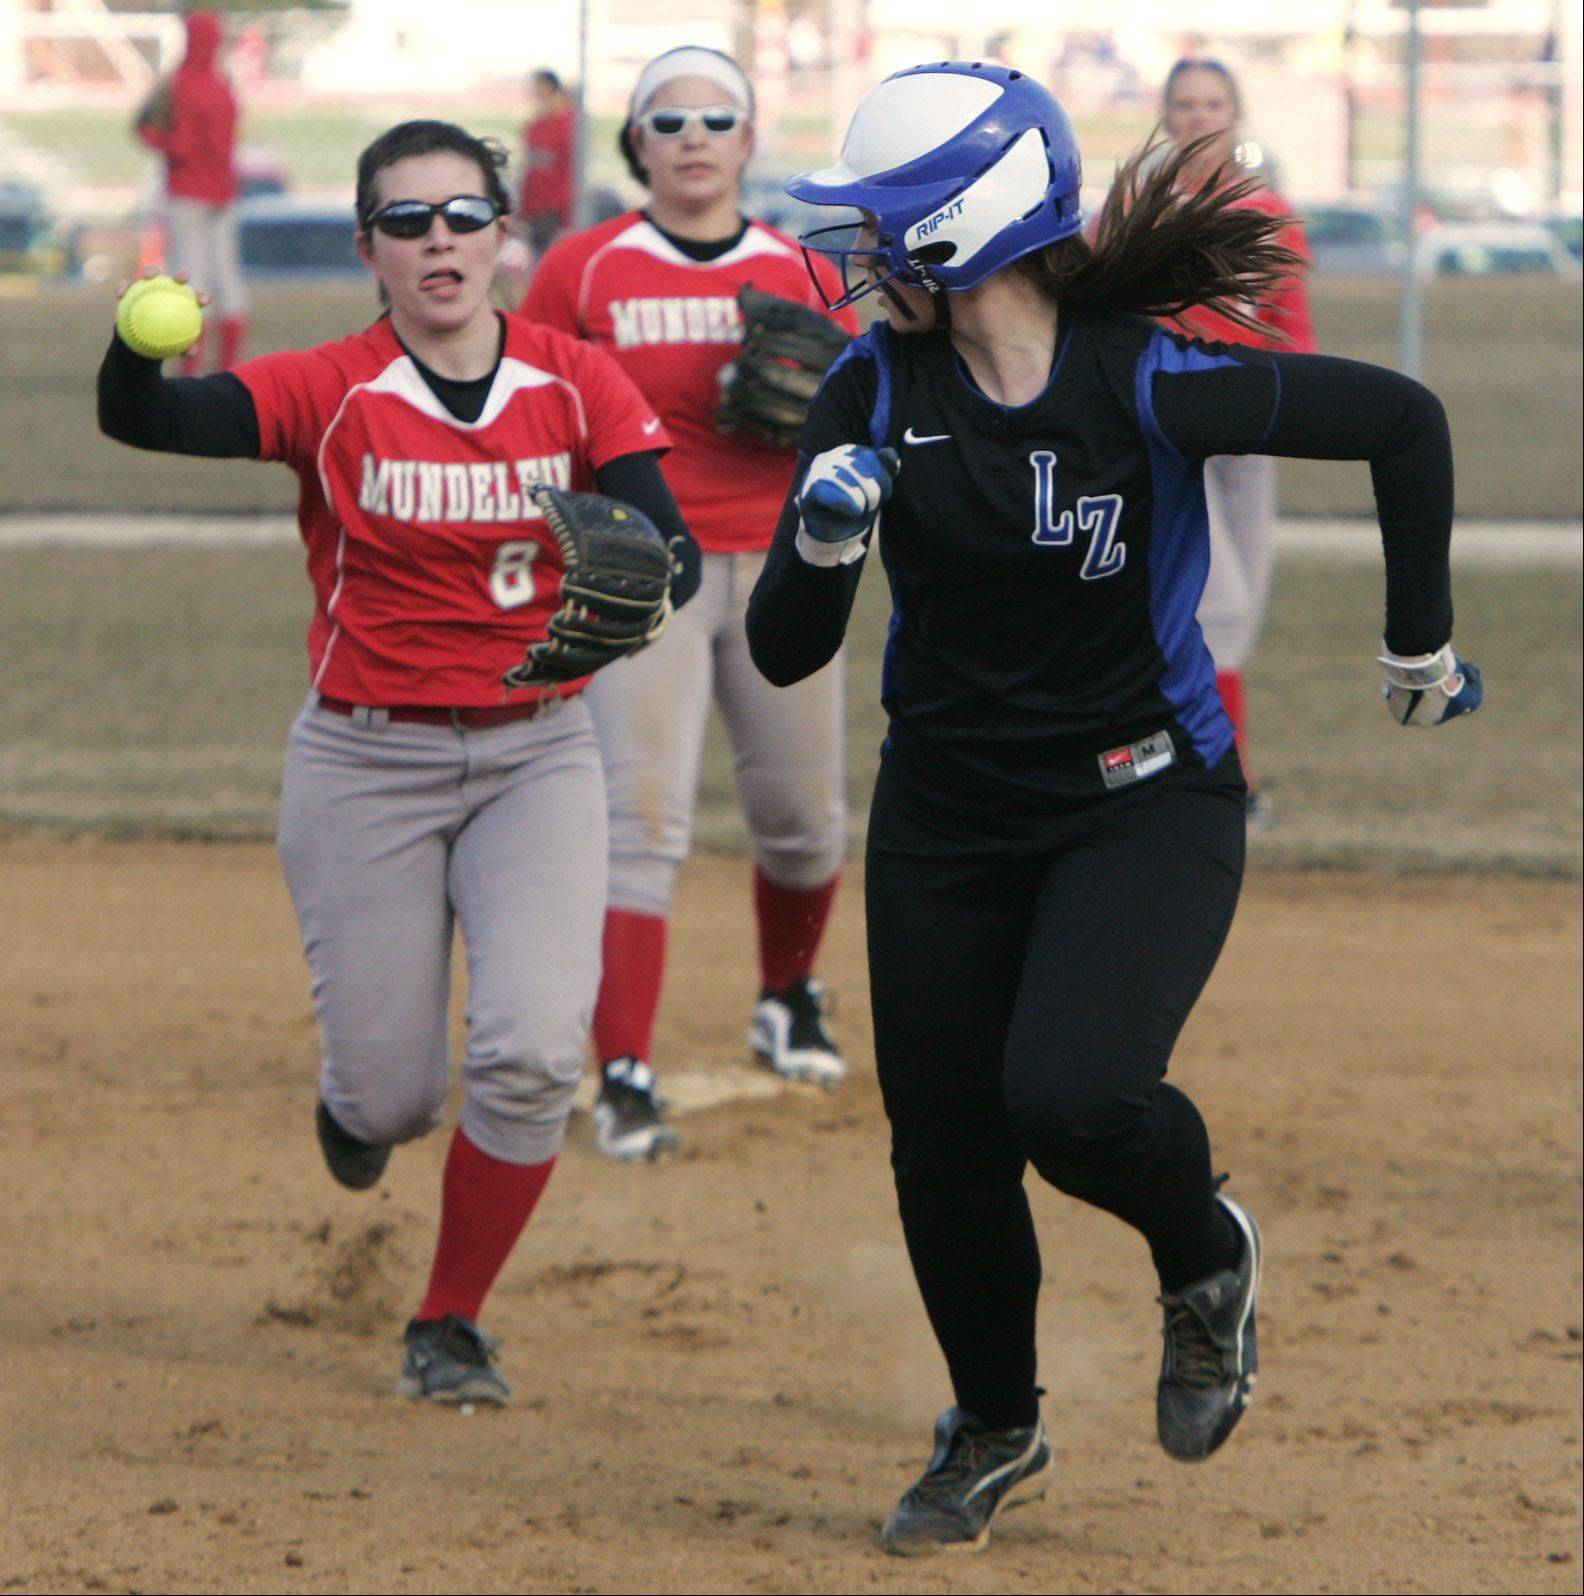 Lake Zurich runner Mallory Parsons gets caught in a rundown between second base and first base by Mundelein shortstop Maddie Zazas in the first inningon Tuesday. Parsons made it safely to second base.